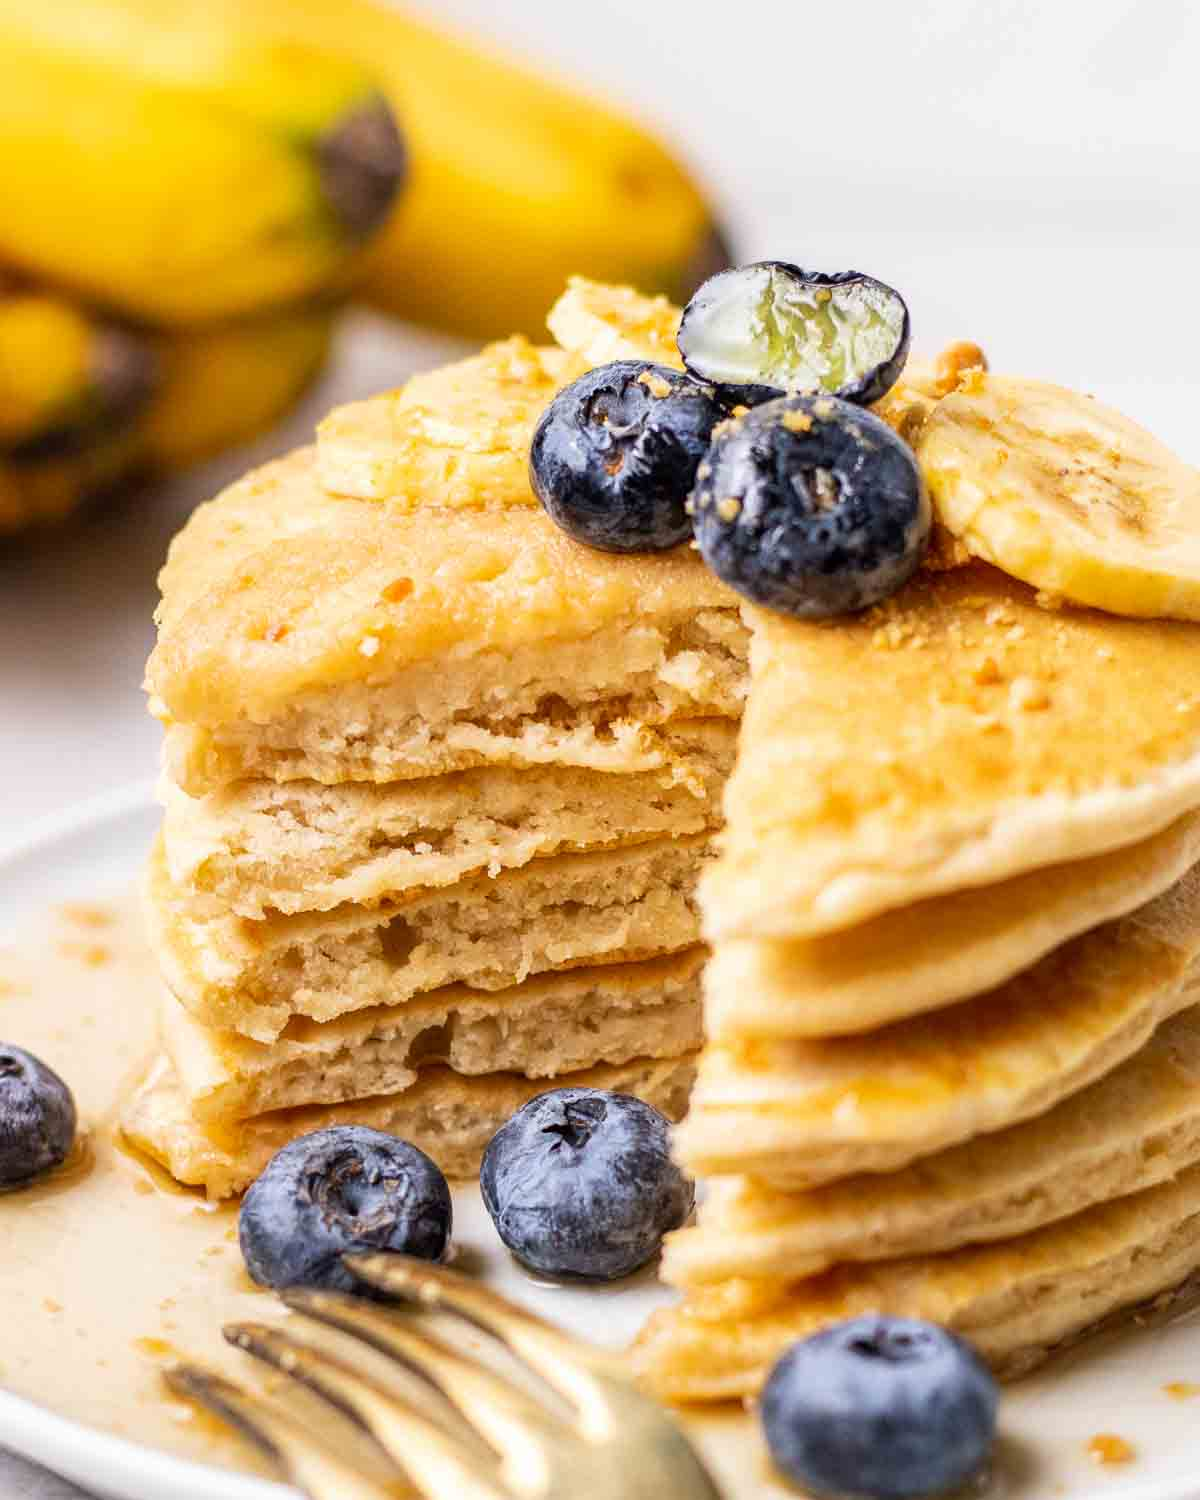 Stack of pancakes with triangular wedge cut through them with a fork beside.